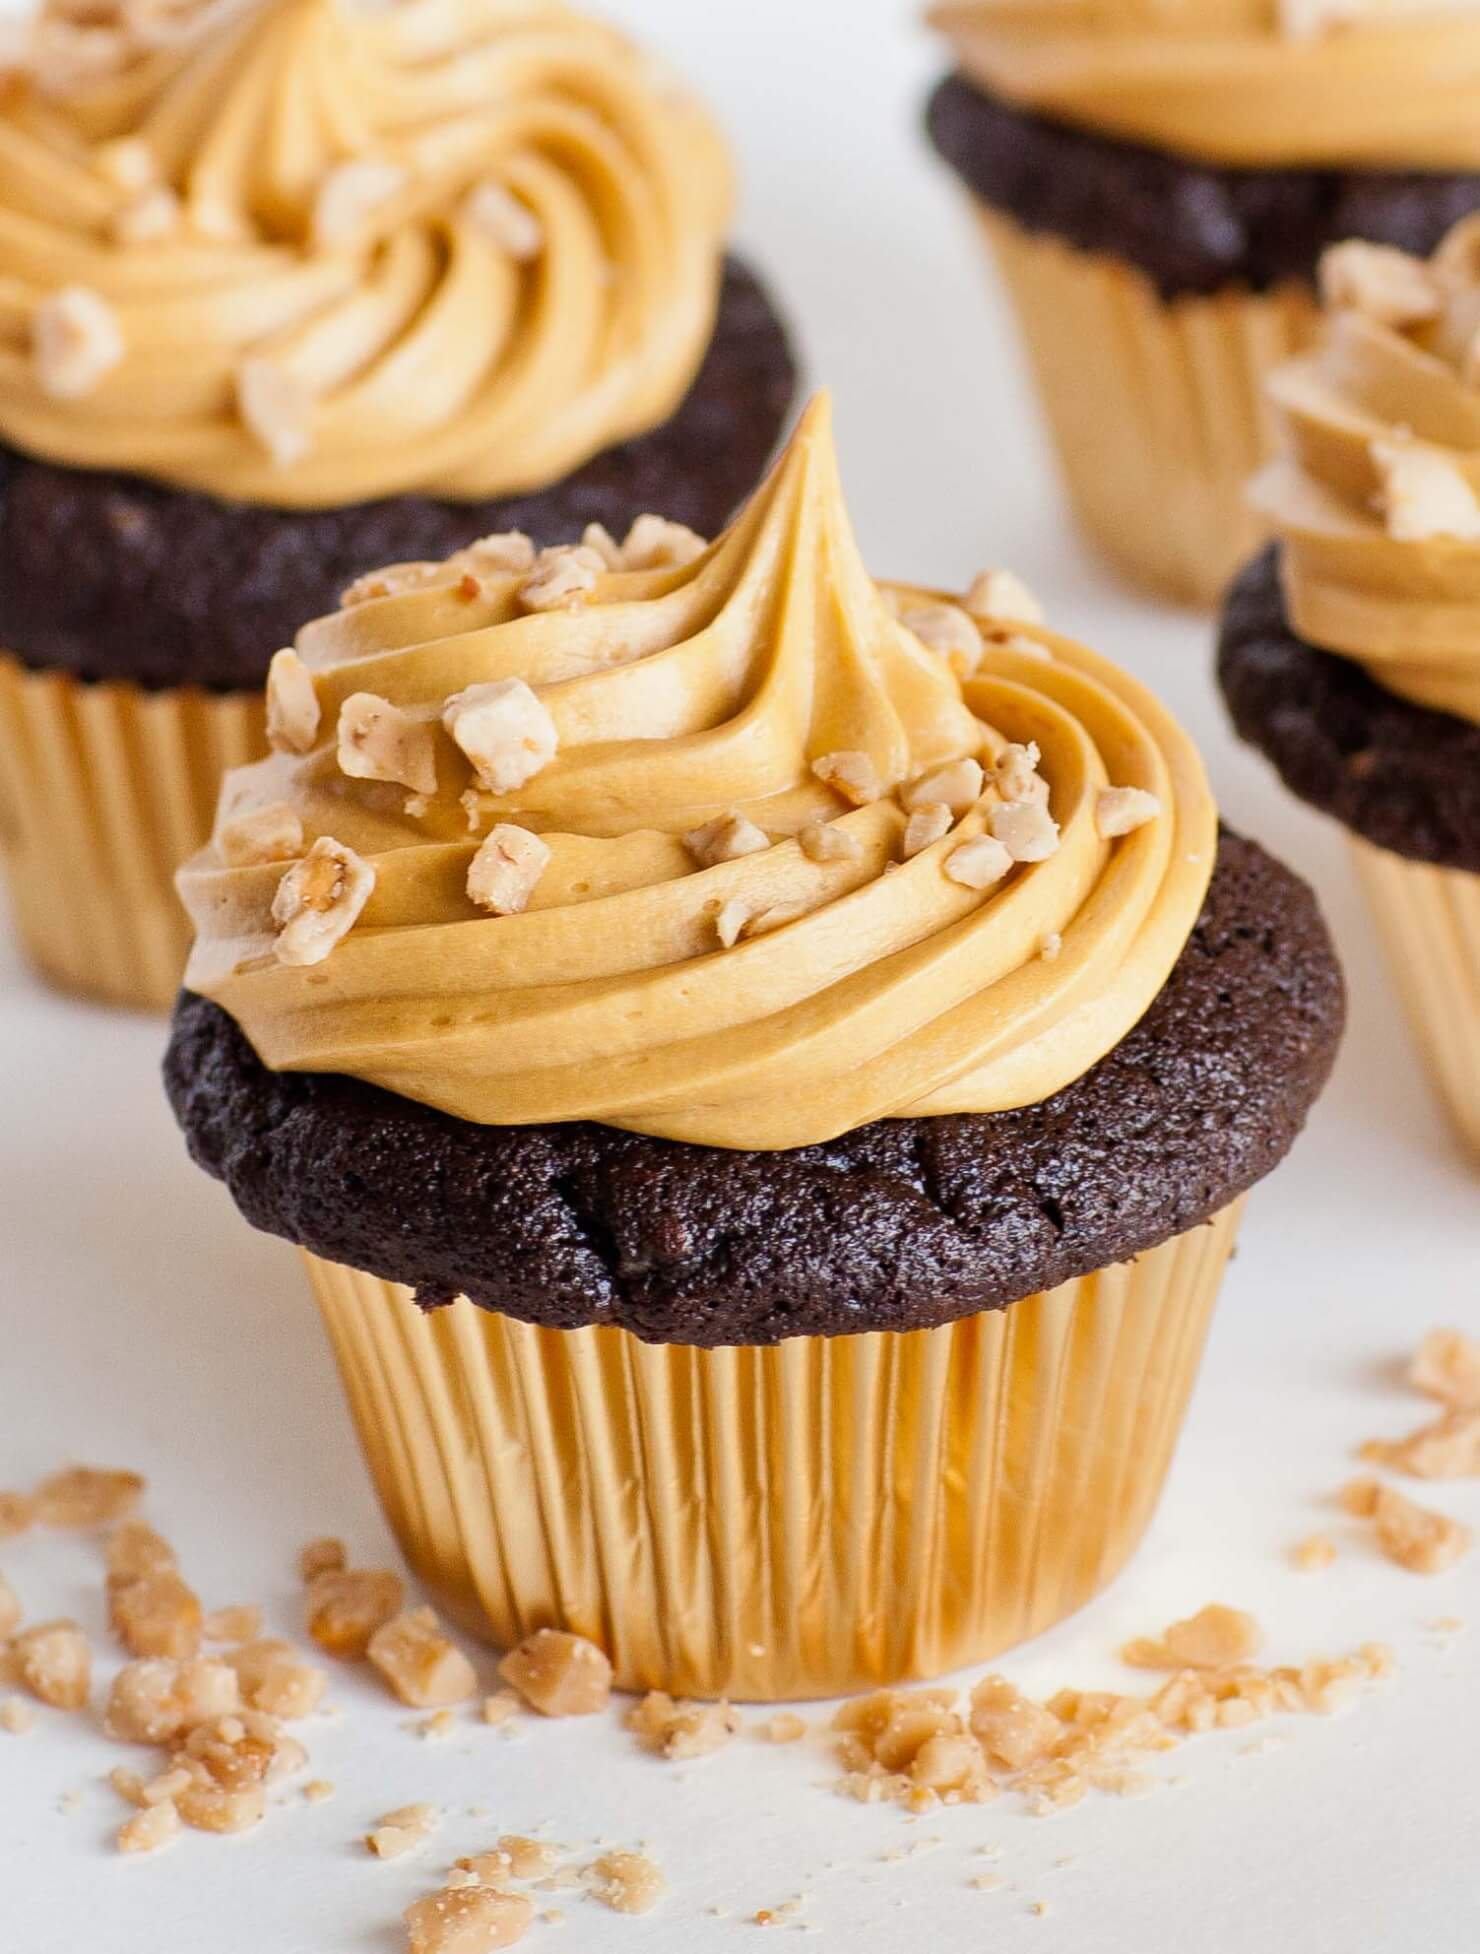 Chocolate Toffee Cupcakes with Caramel Frosting